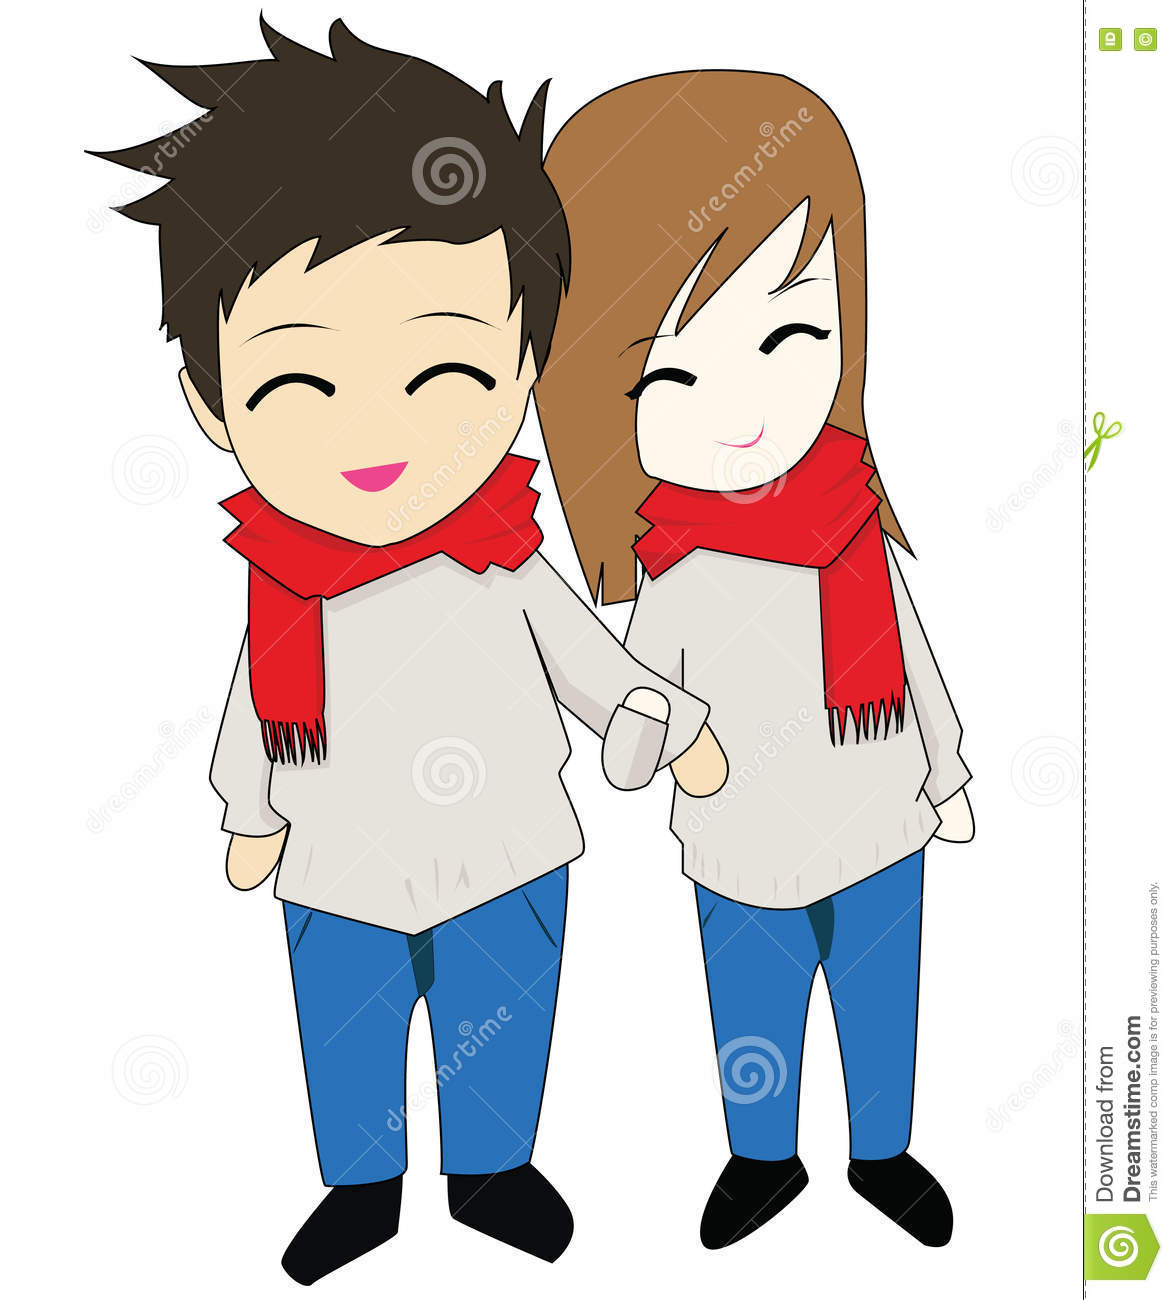 Happy couple with red scarf and same shirt holding hand each other